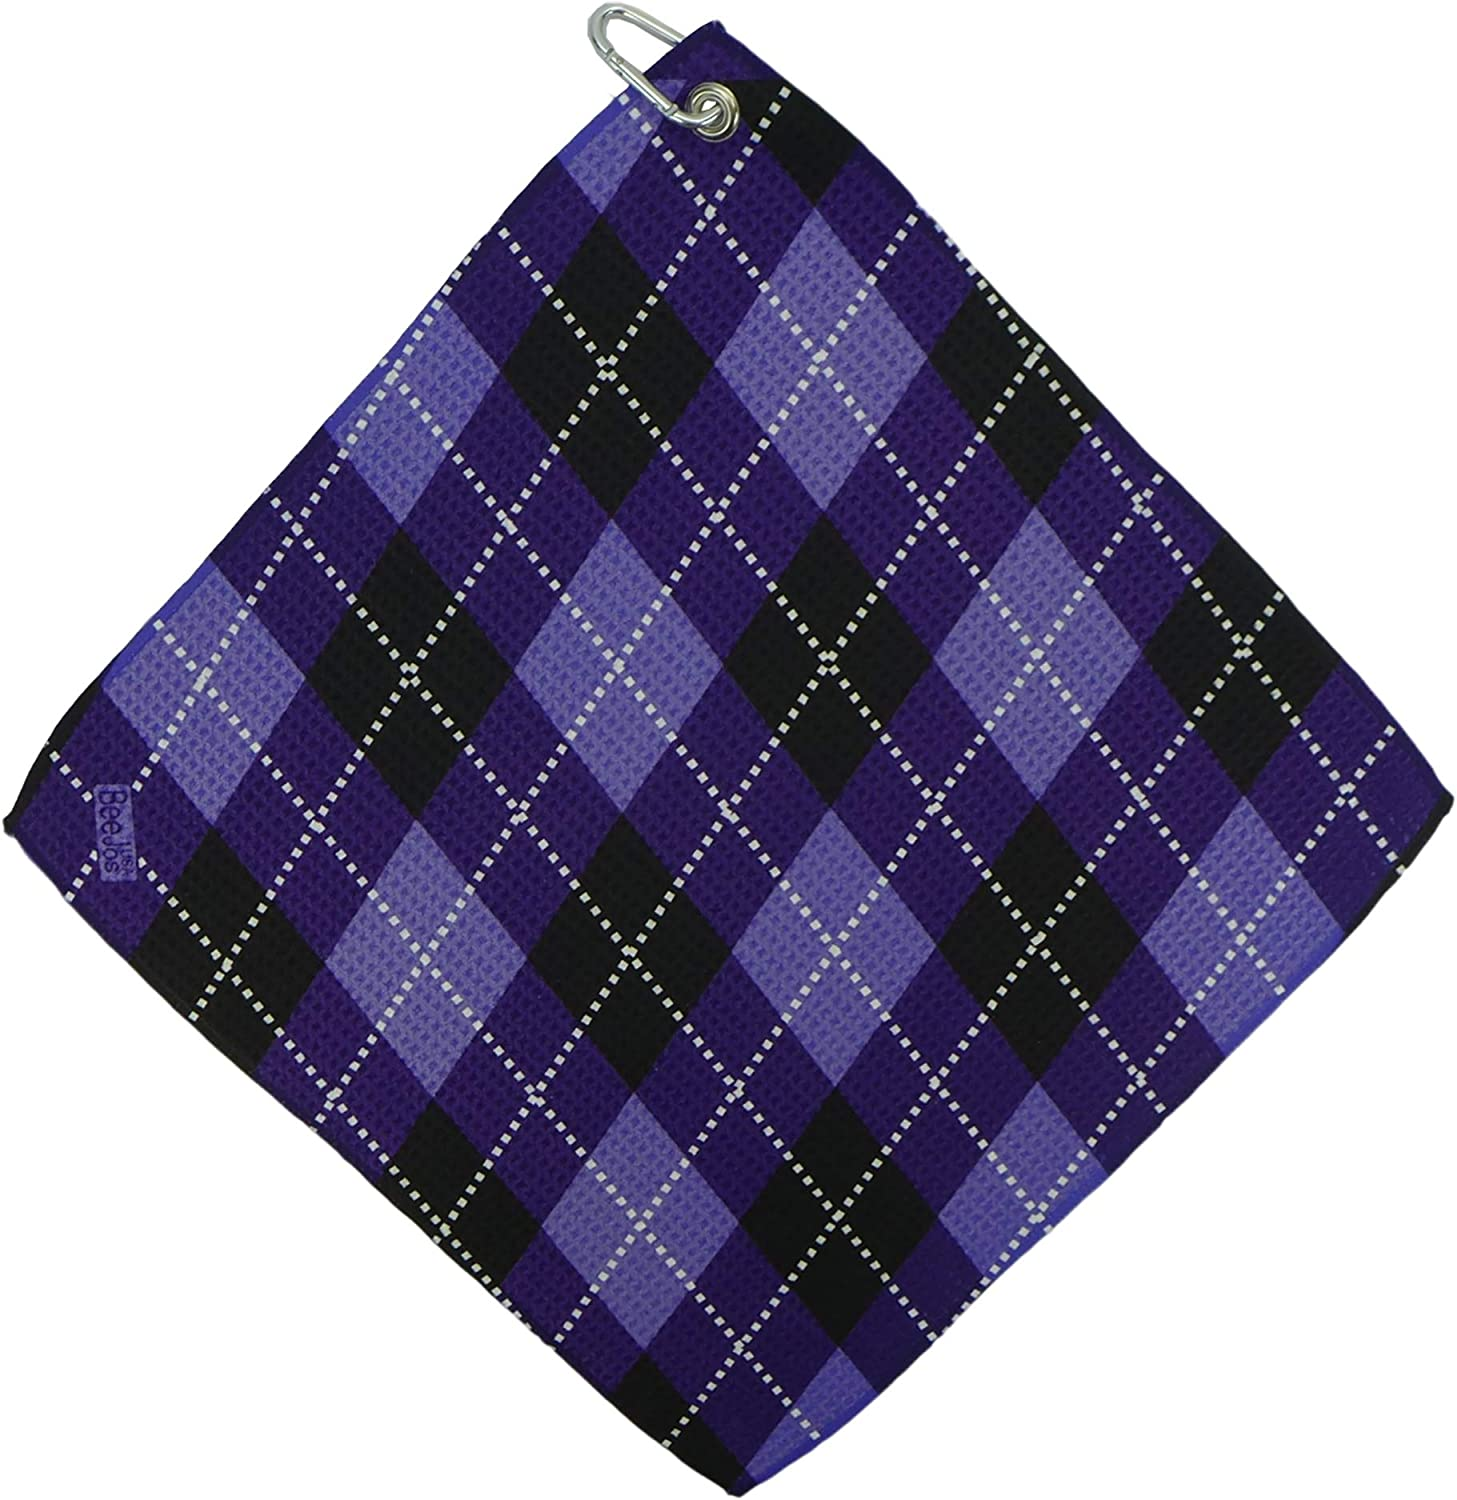 "BeeJo's Women's Purple Argyle Print Microfiber Golf Towel. Heavyweight Waffle Style 16""X 16"" USA."